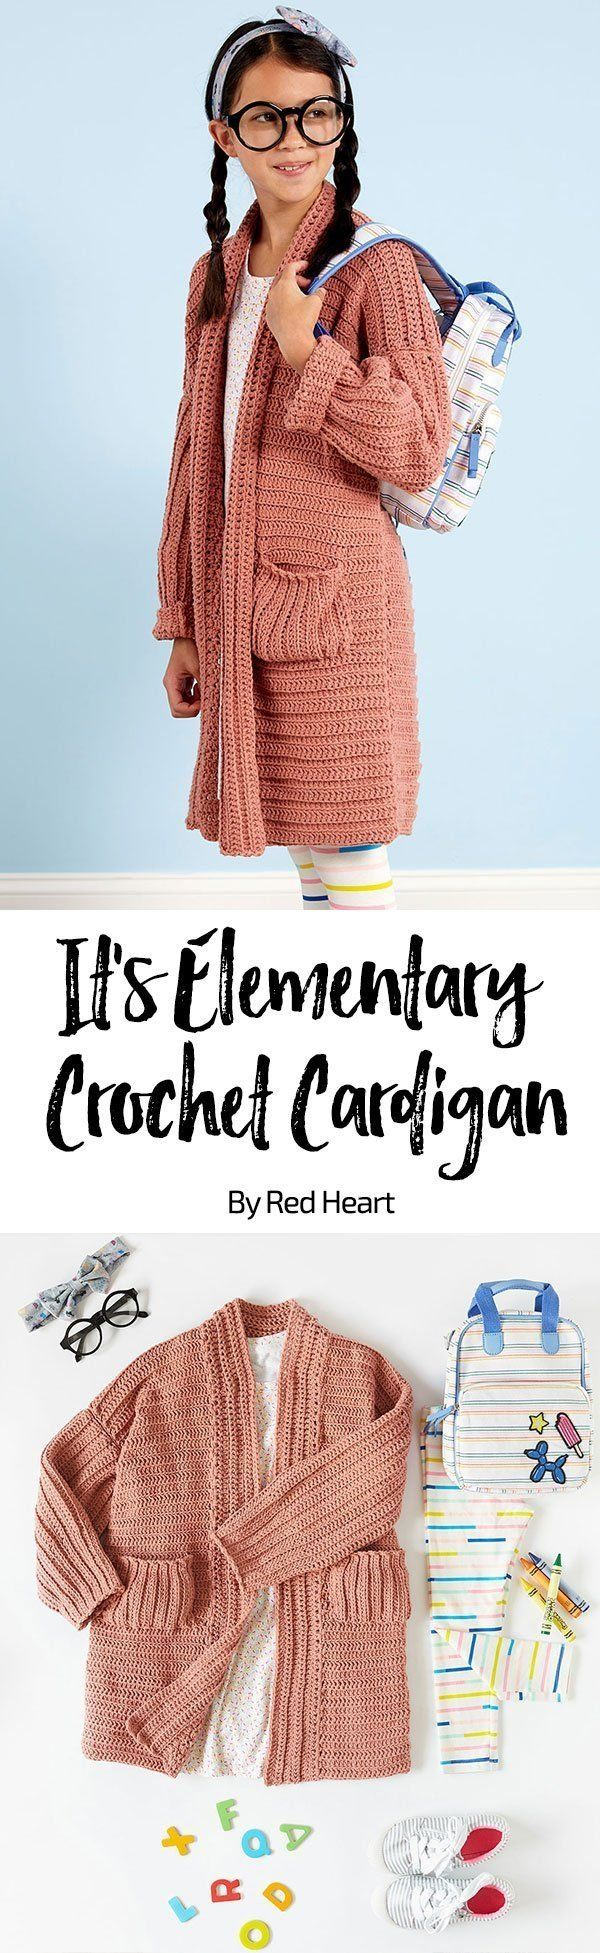 It's Elementary Crochet Cardigan free crochet pattern in Amore yarn.  Crochet this fashion-right longer length cardigan to keep her warm on cool mornings. She'll love the softness of this yarn that's available in a range of awesome colors.